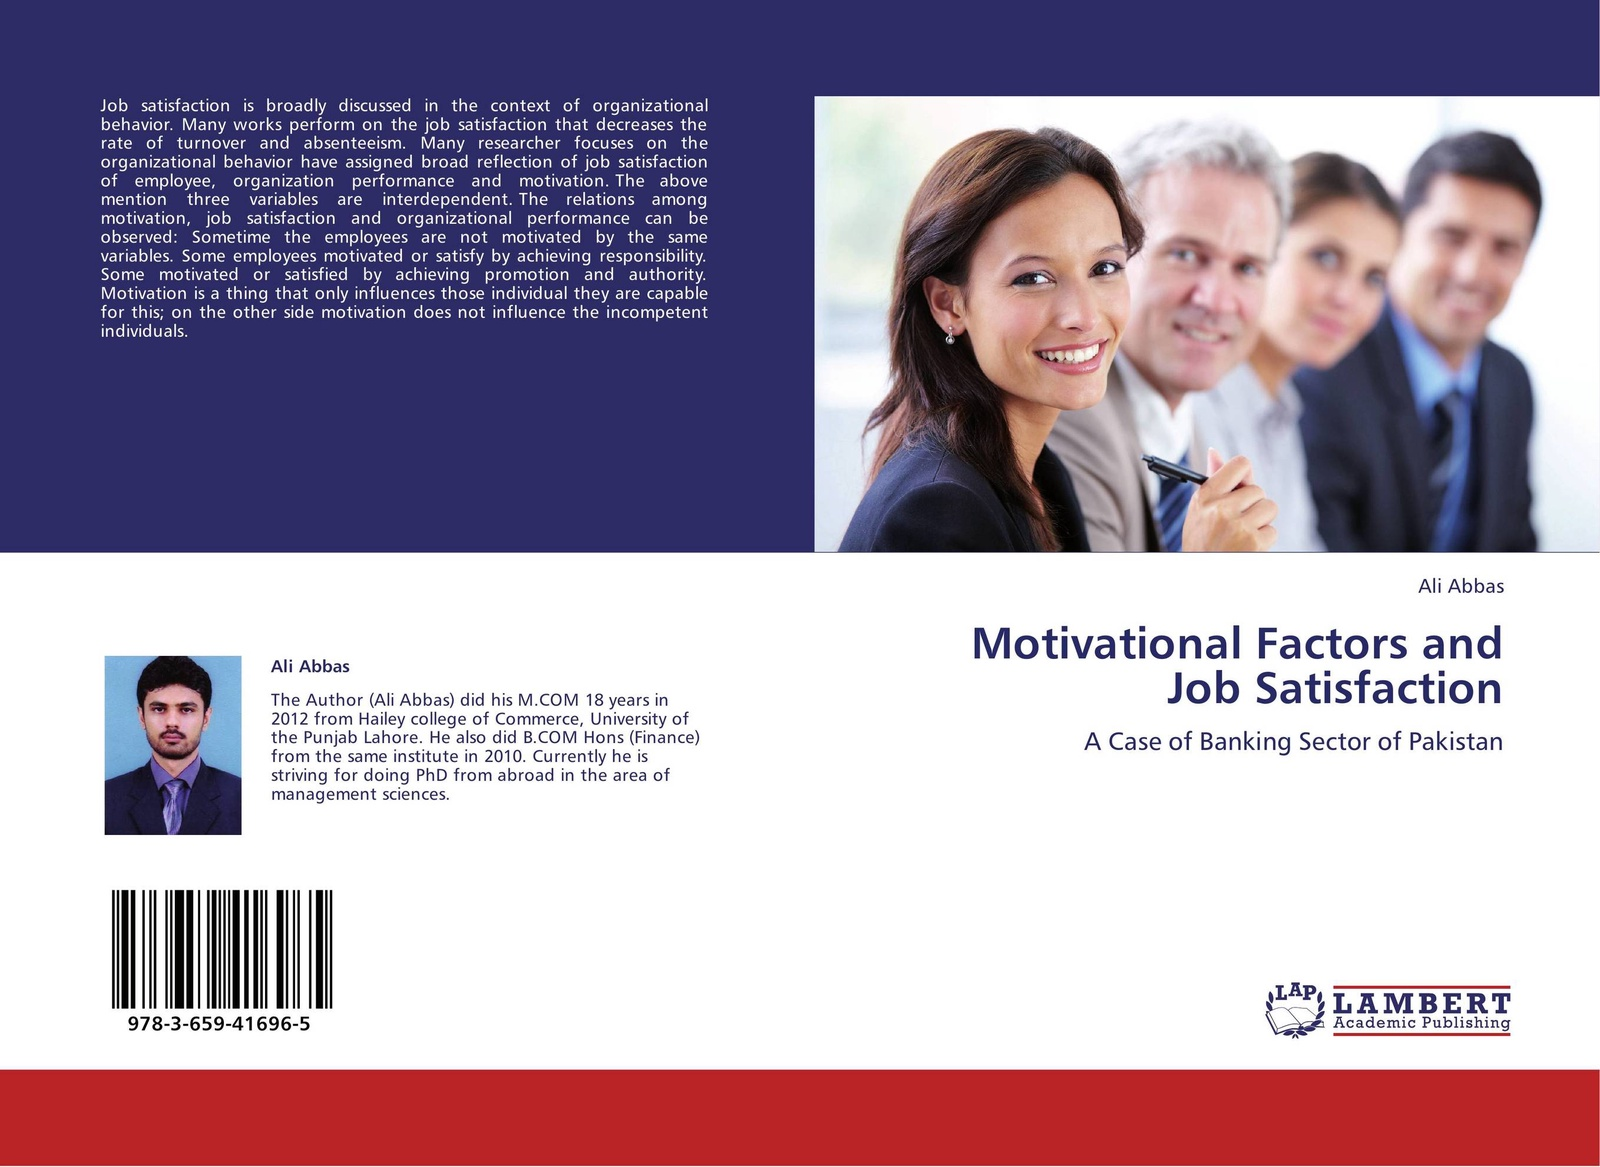 Ali Abbas Motivational Factors and Job Satisfaction muhammad naeem intrinsic versus extrinsic motivation and the effects of those types on employees